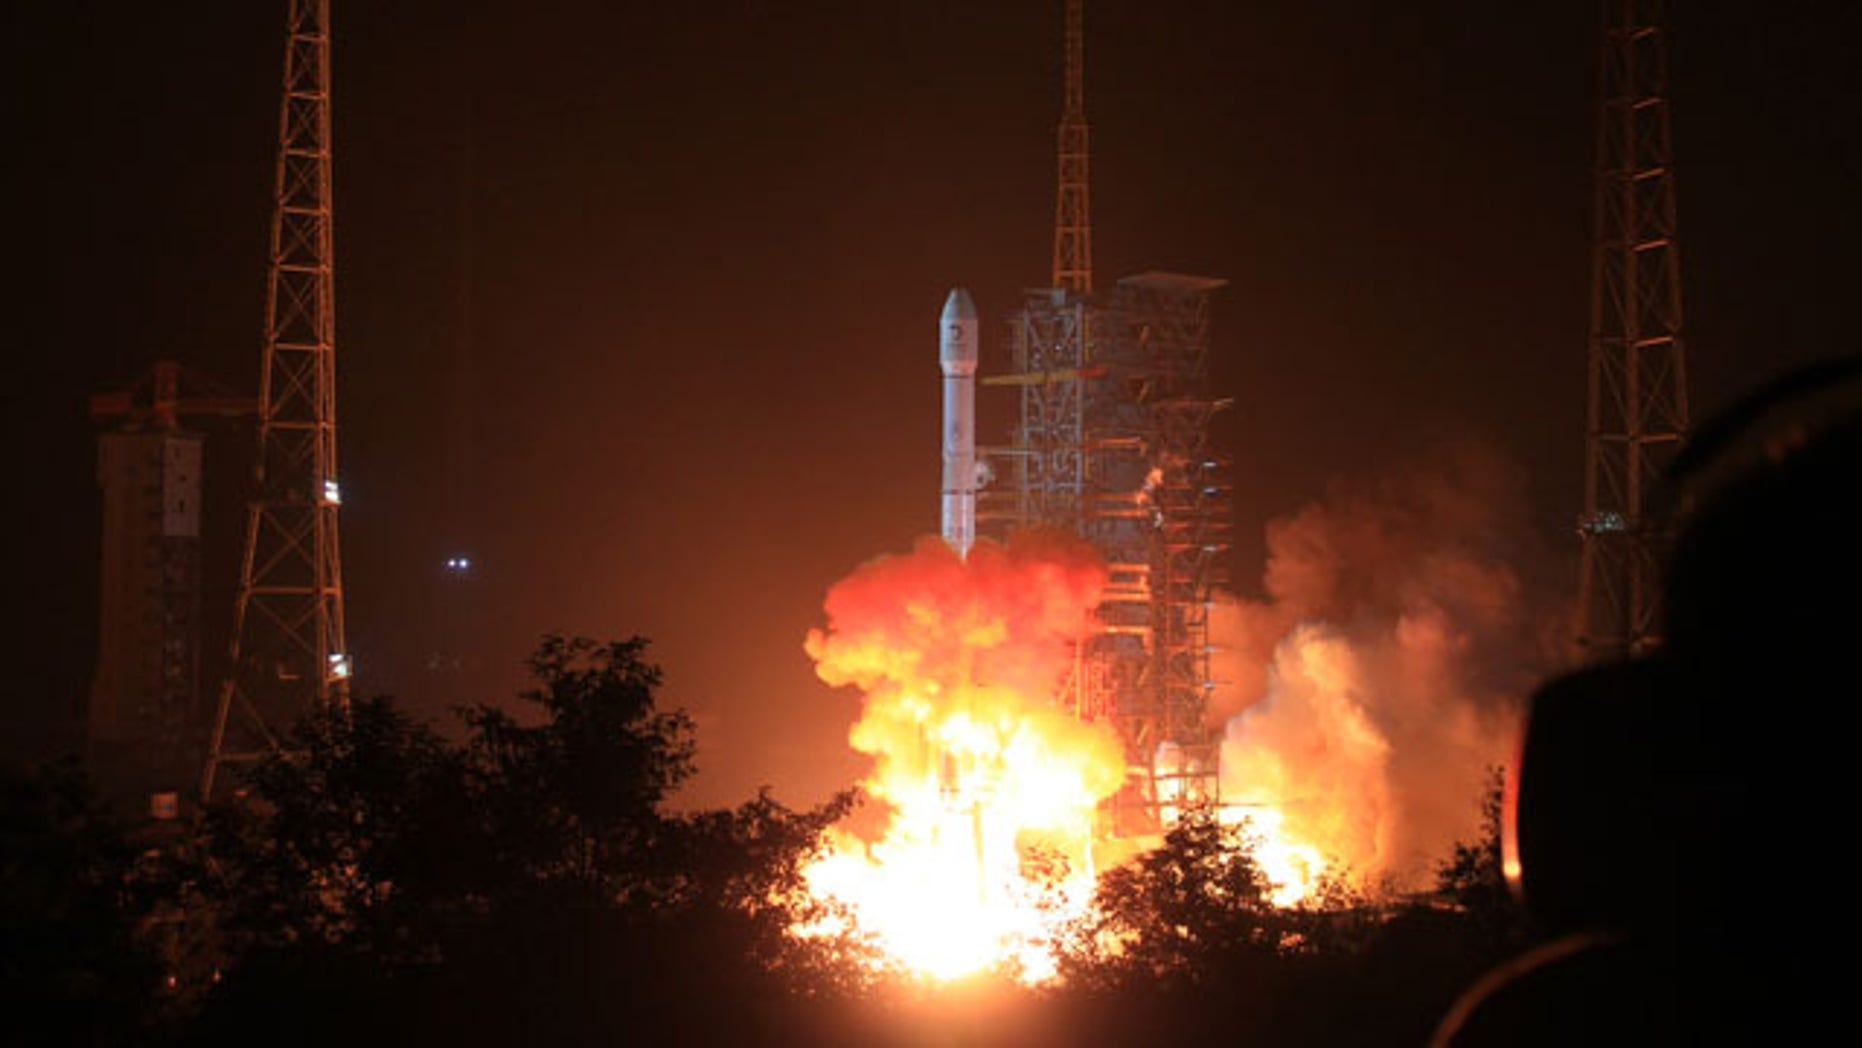 December 2, 2013: In this photo released by China's Xinhua News Agency, the Long March 3B rocket carrying the Chang'e-3 lunar probe blasts off from the launch pad at Xichang Satellite Launch Center, southwest China's Sichuan Province. (AP Photo/Xinhua, Li Gang)